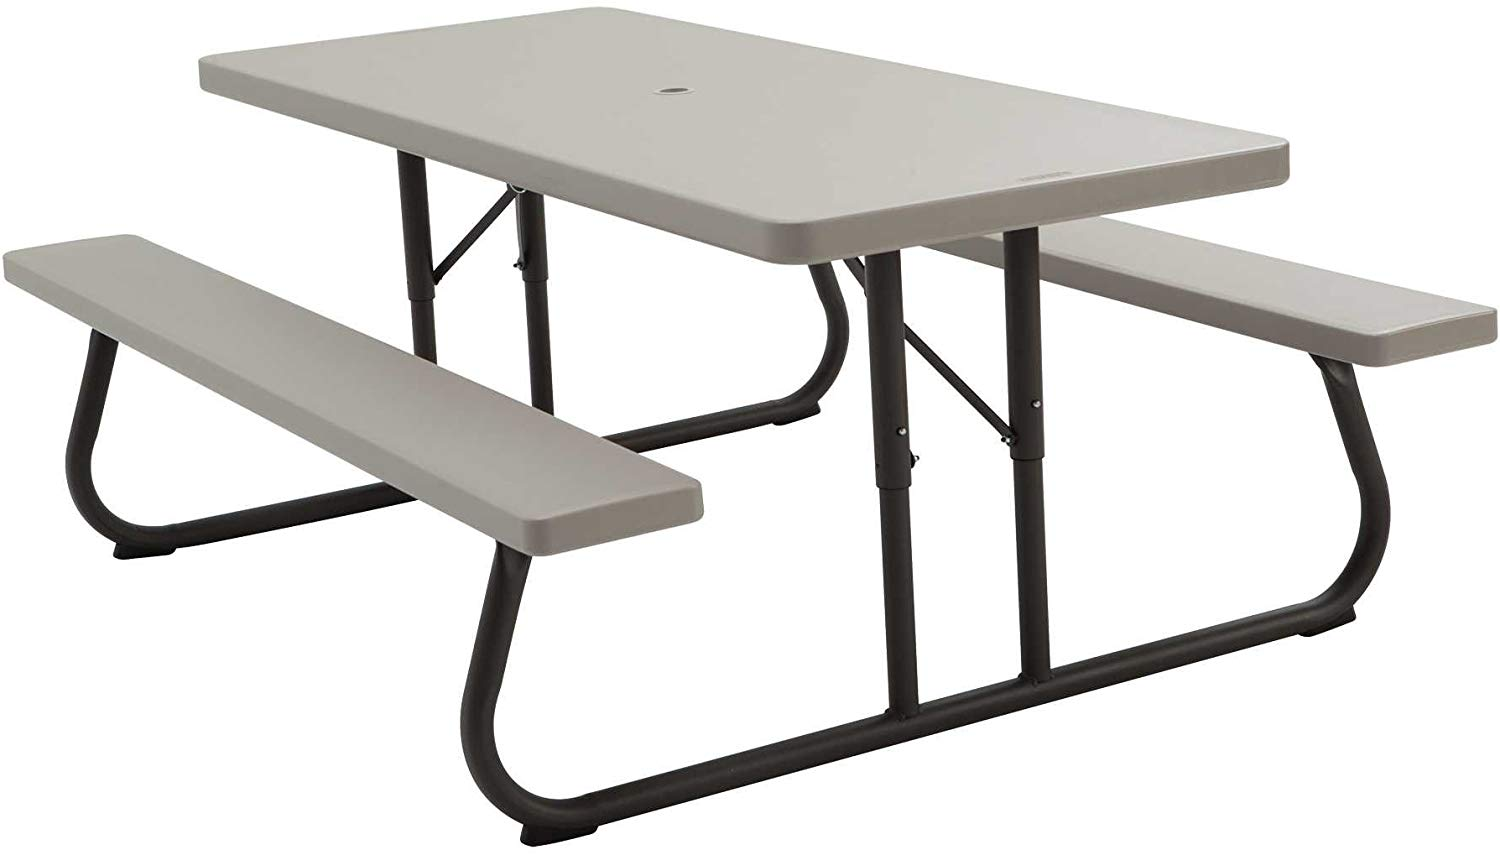 The Lifetime (22119) Folding Picnic Table